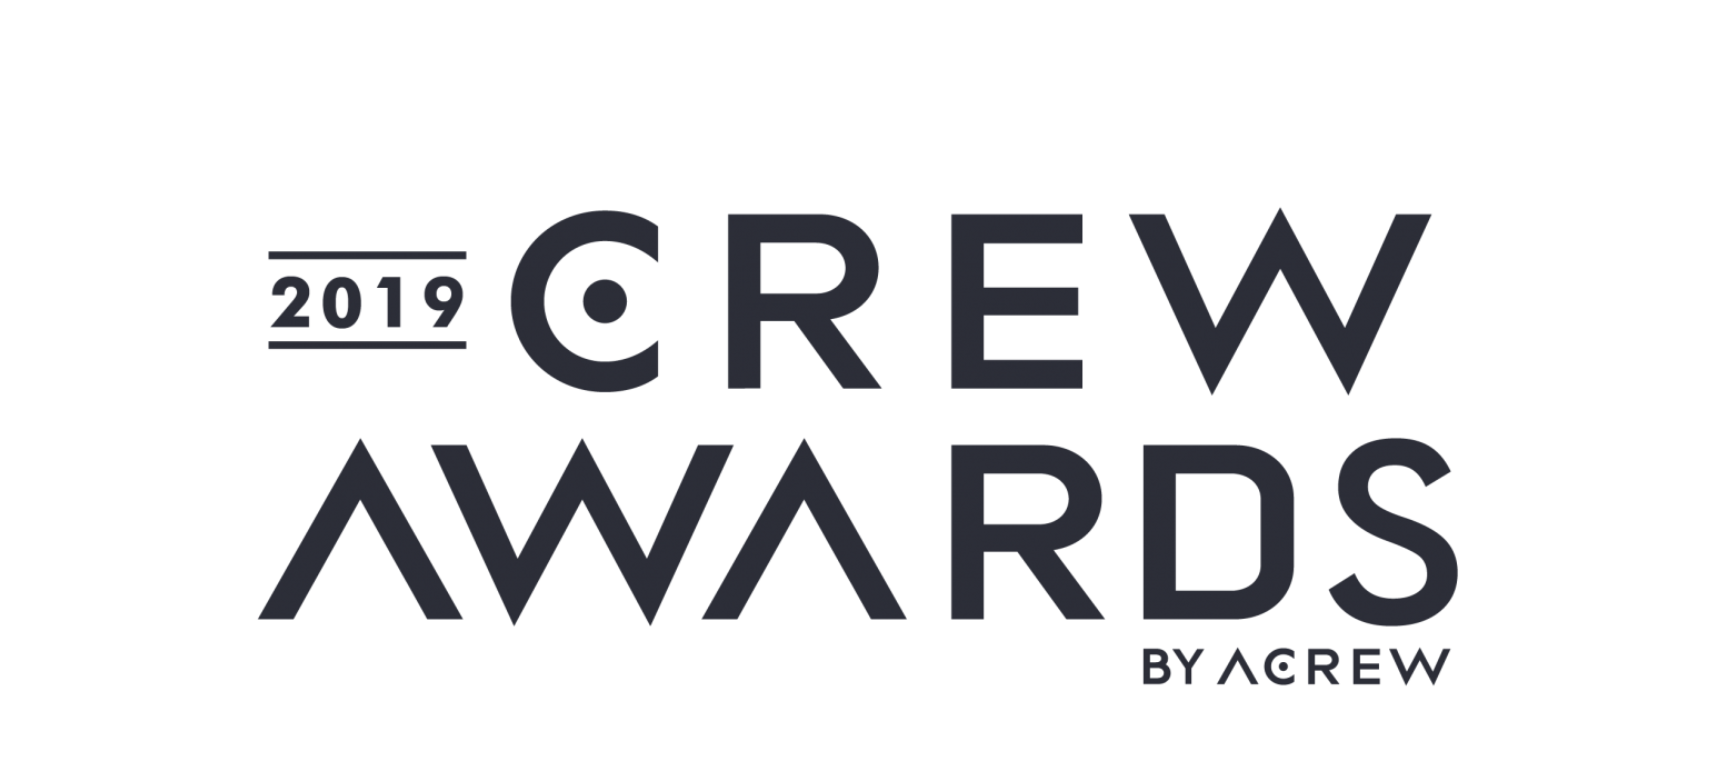 ACREW Crew Awards